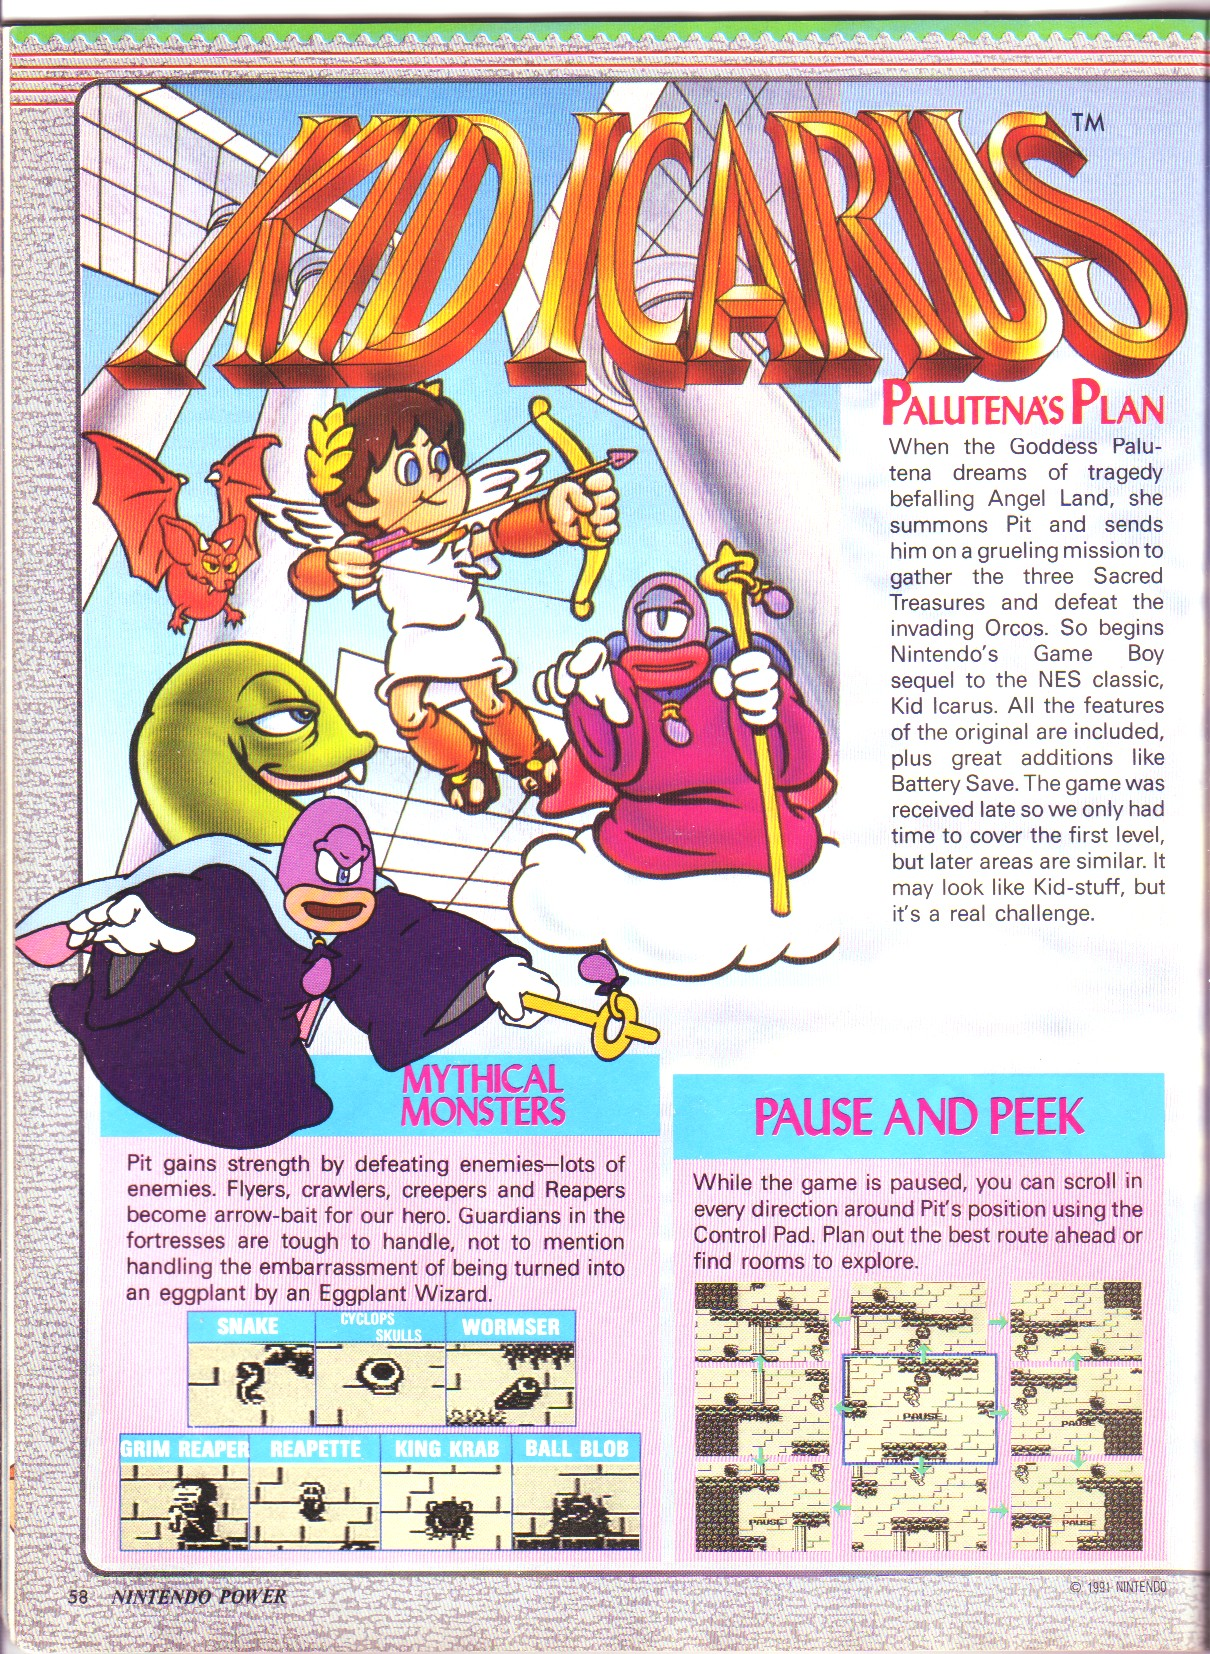 Pagina De Nintendo Power Sobre Kid Icarus Of Myths And Monsters